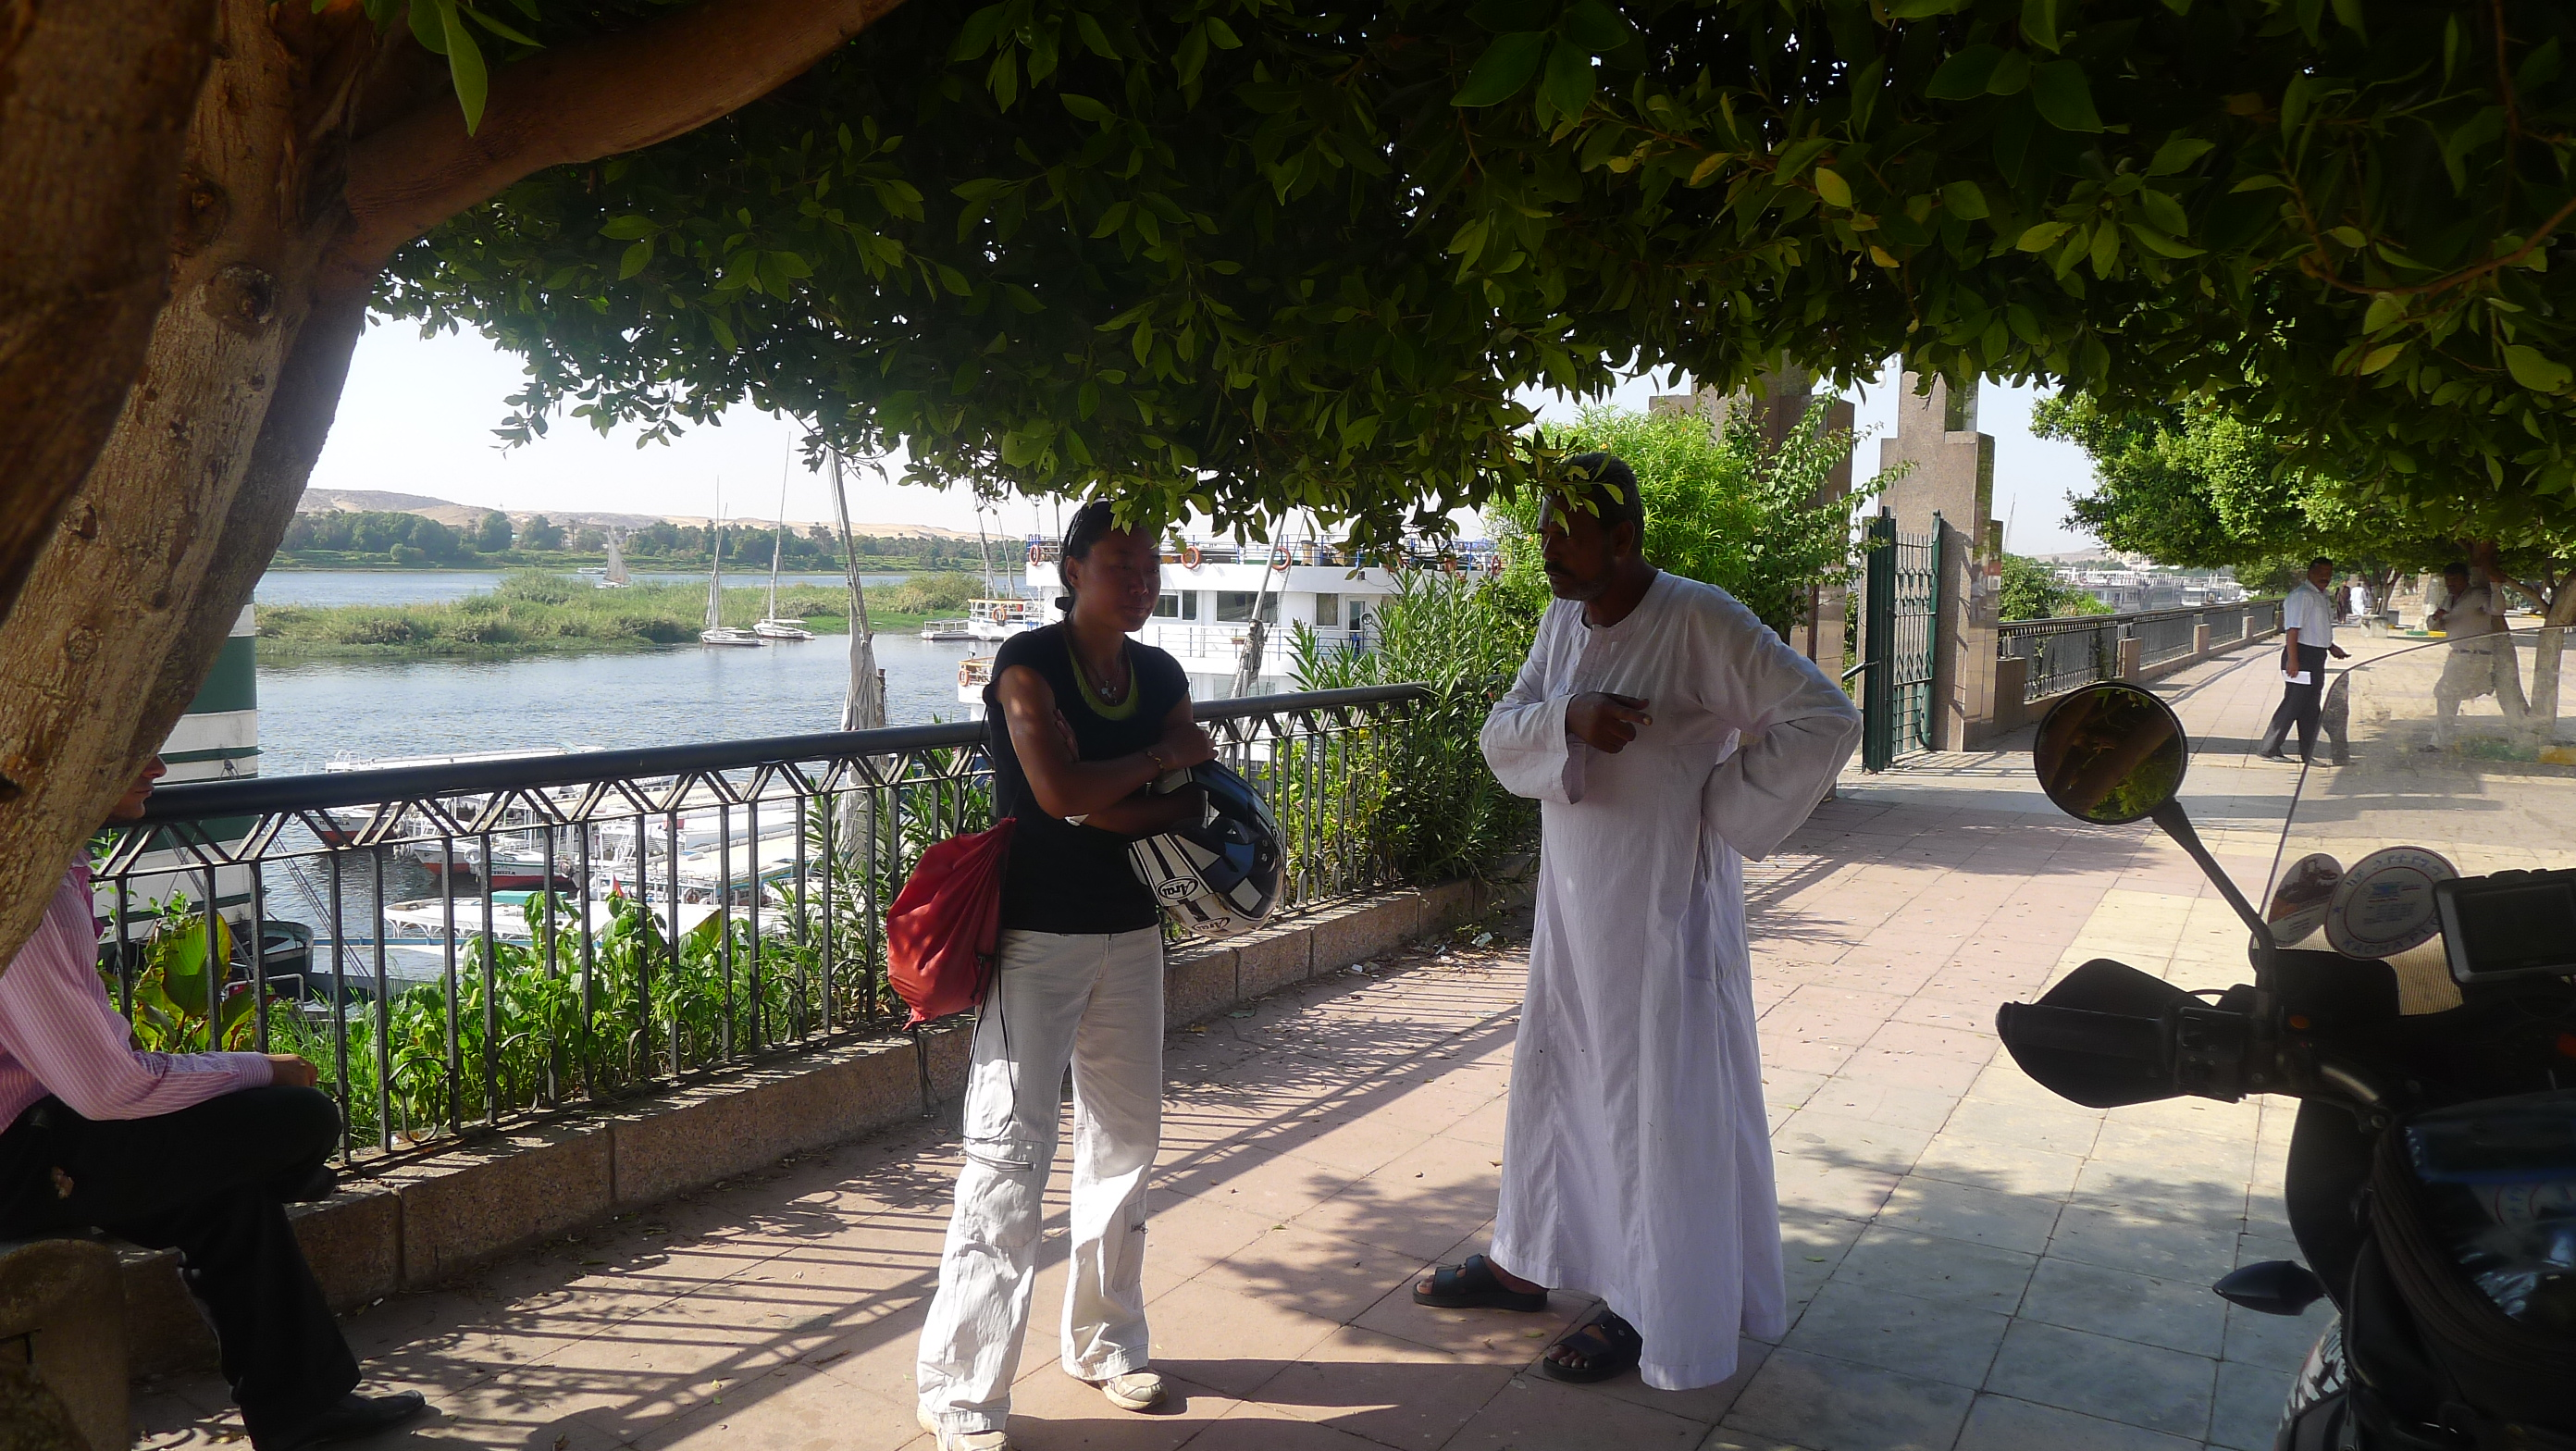 Lots of touts in Luxor ... all good natured banter, but wasting their time with us.